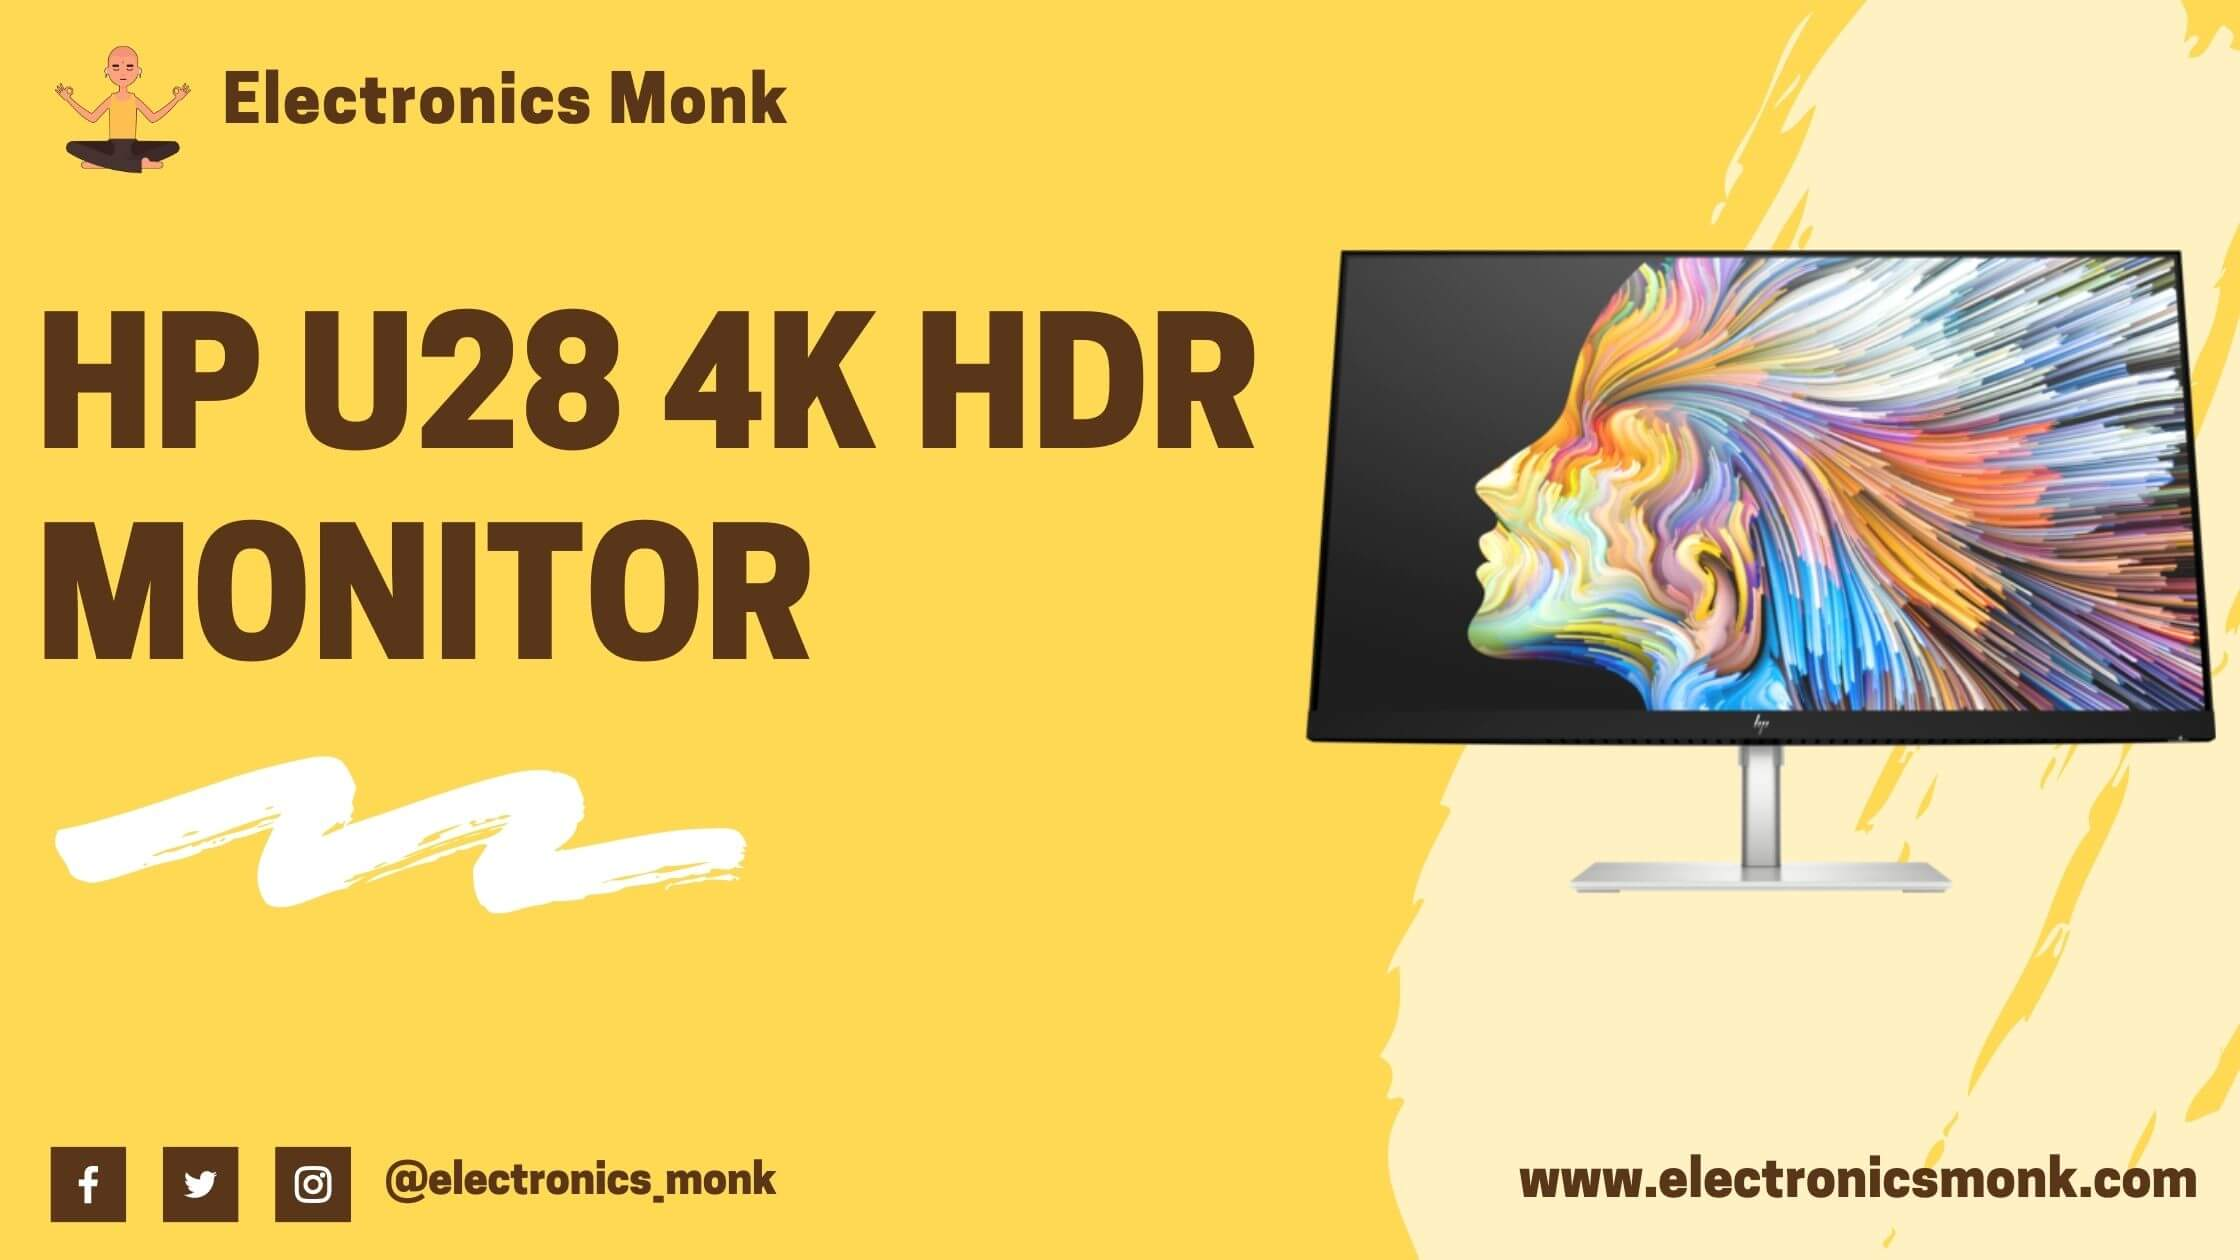 HP U28 4K HDR Monitor Review by Electronics Monk